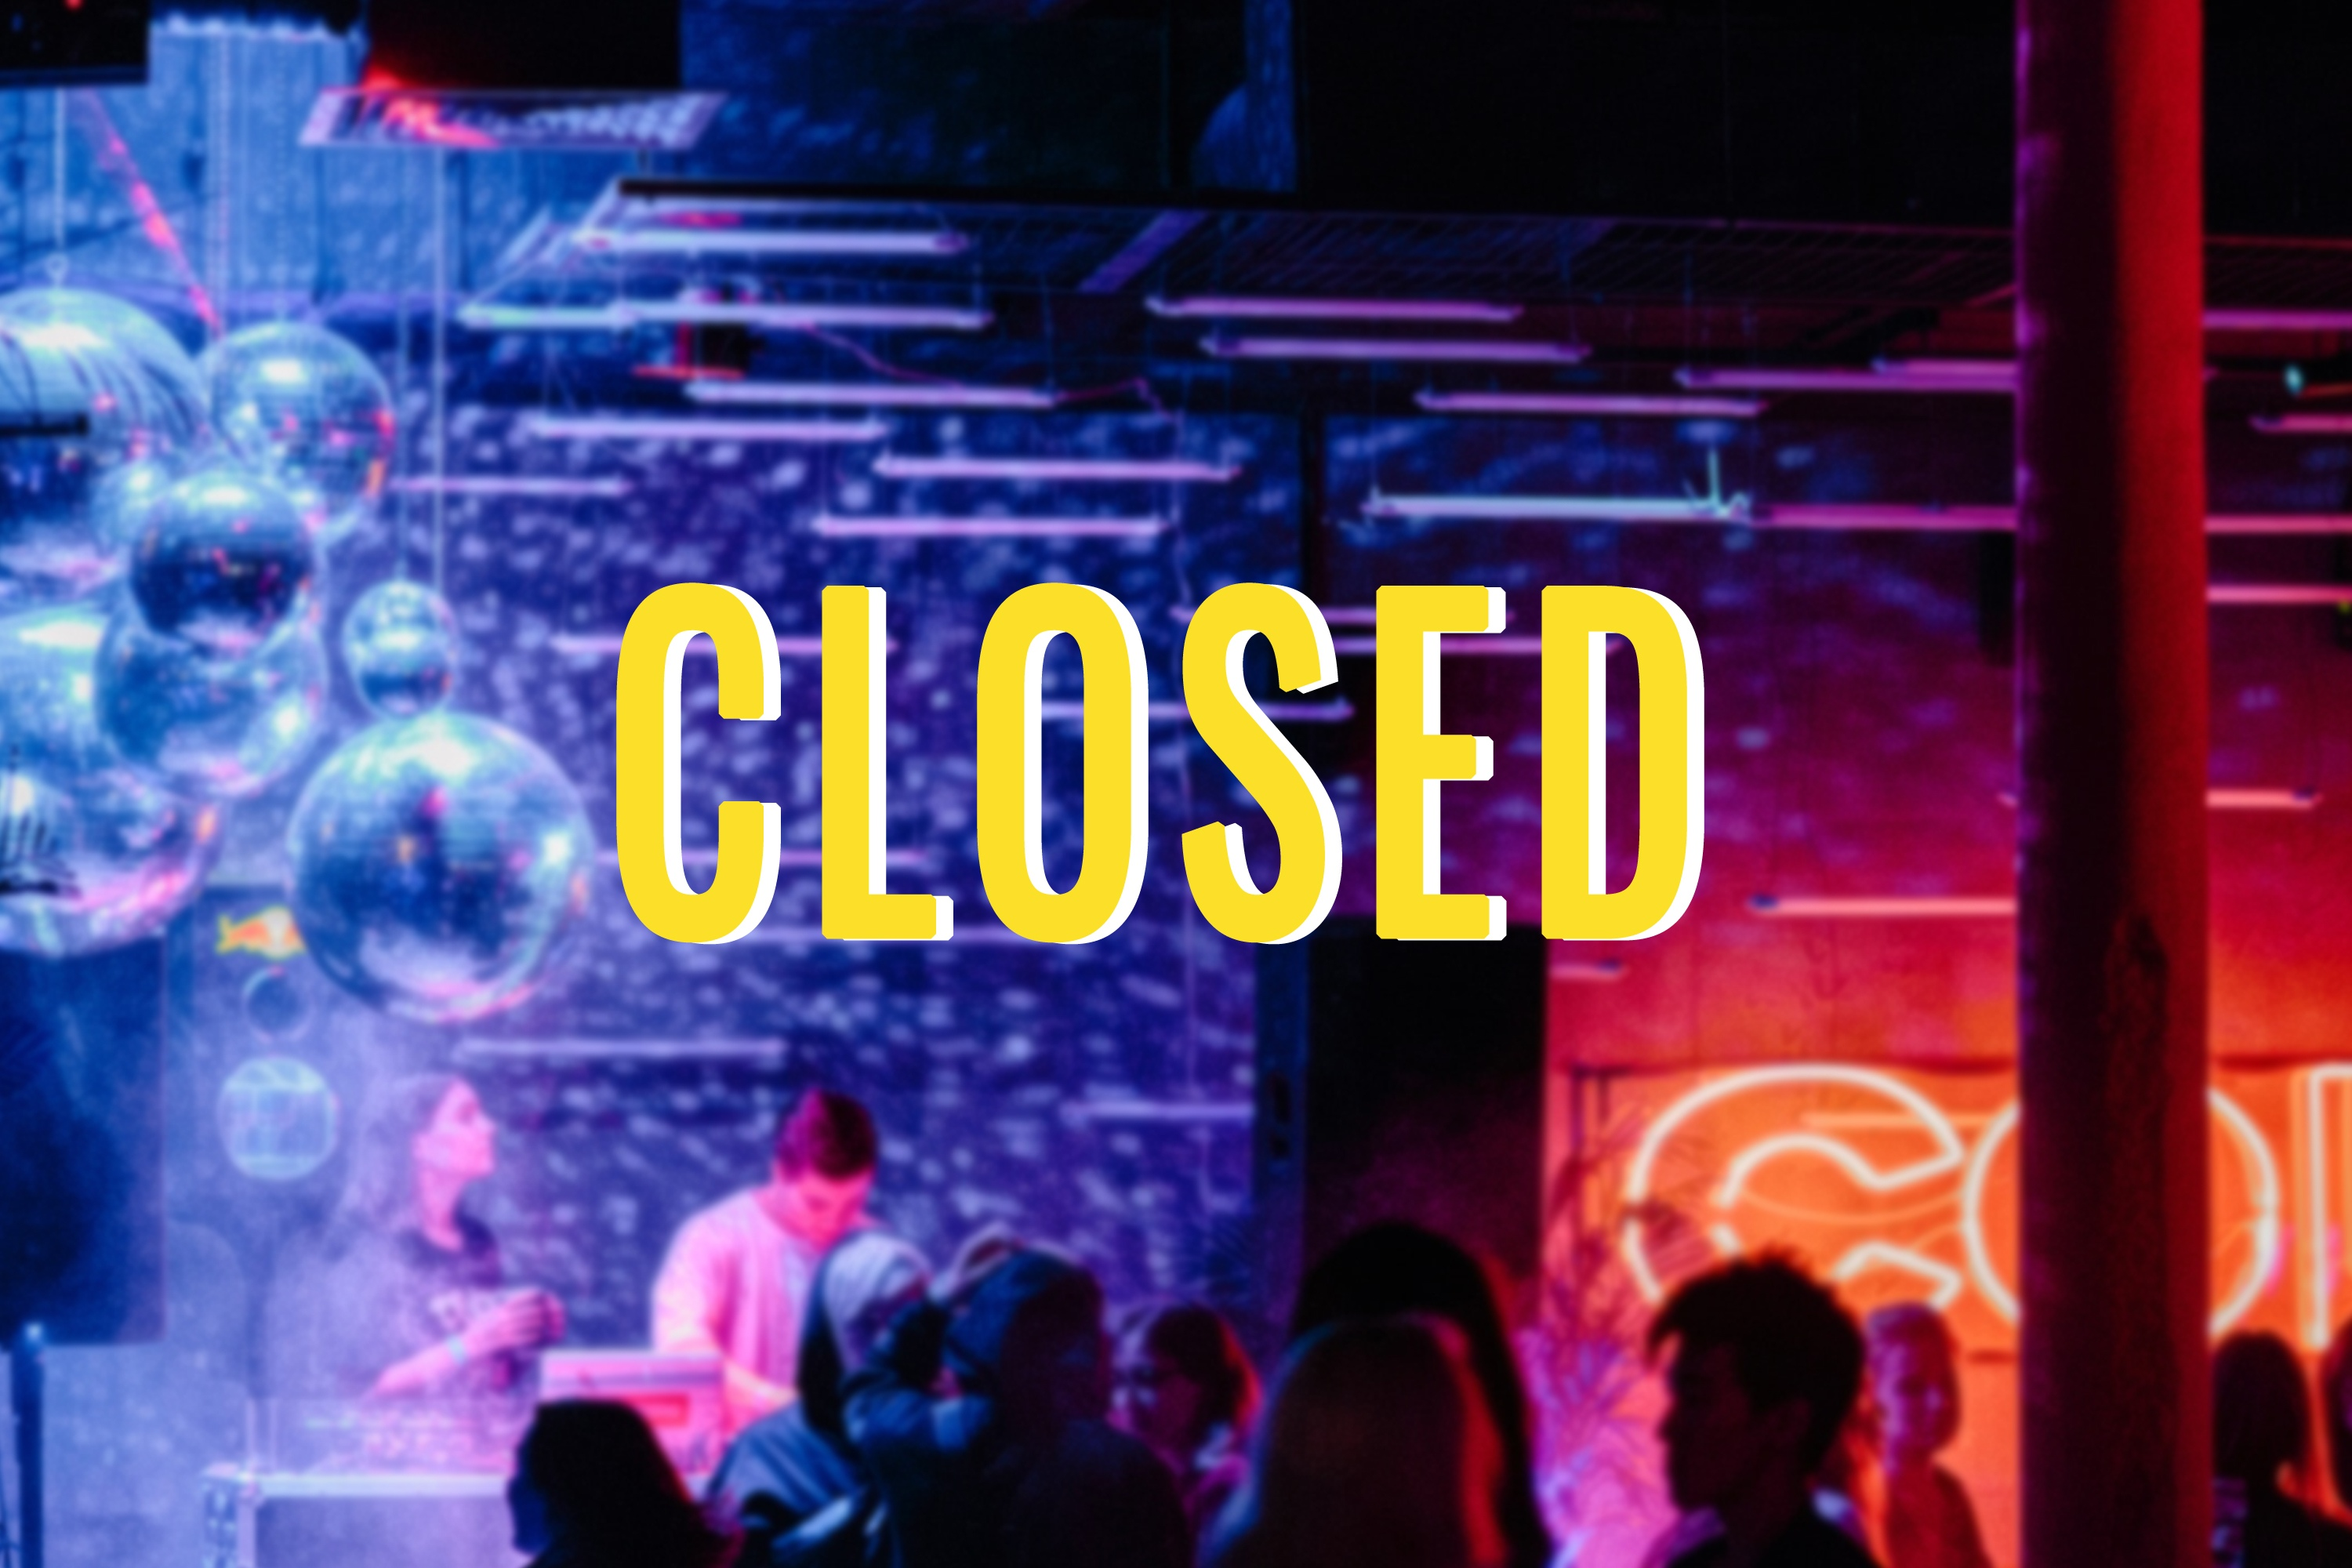 New measures announced: clubs, bars, discos closed